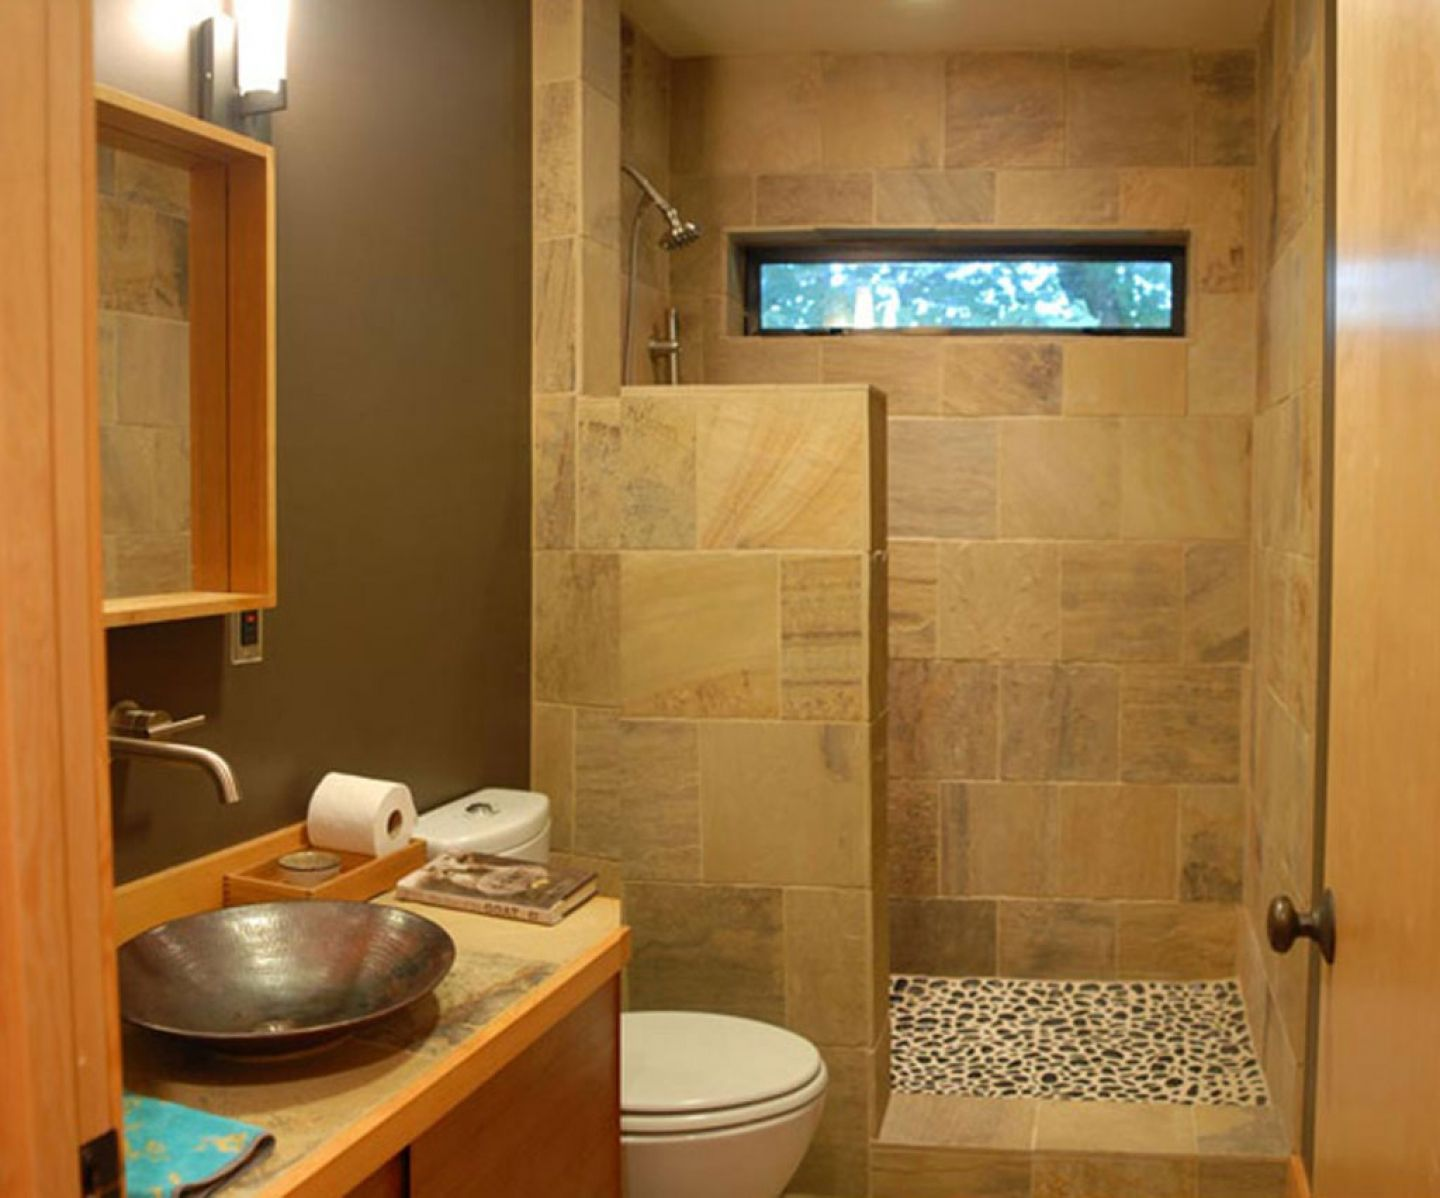 30 best small bathroom ideas - Design Small Home